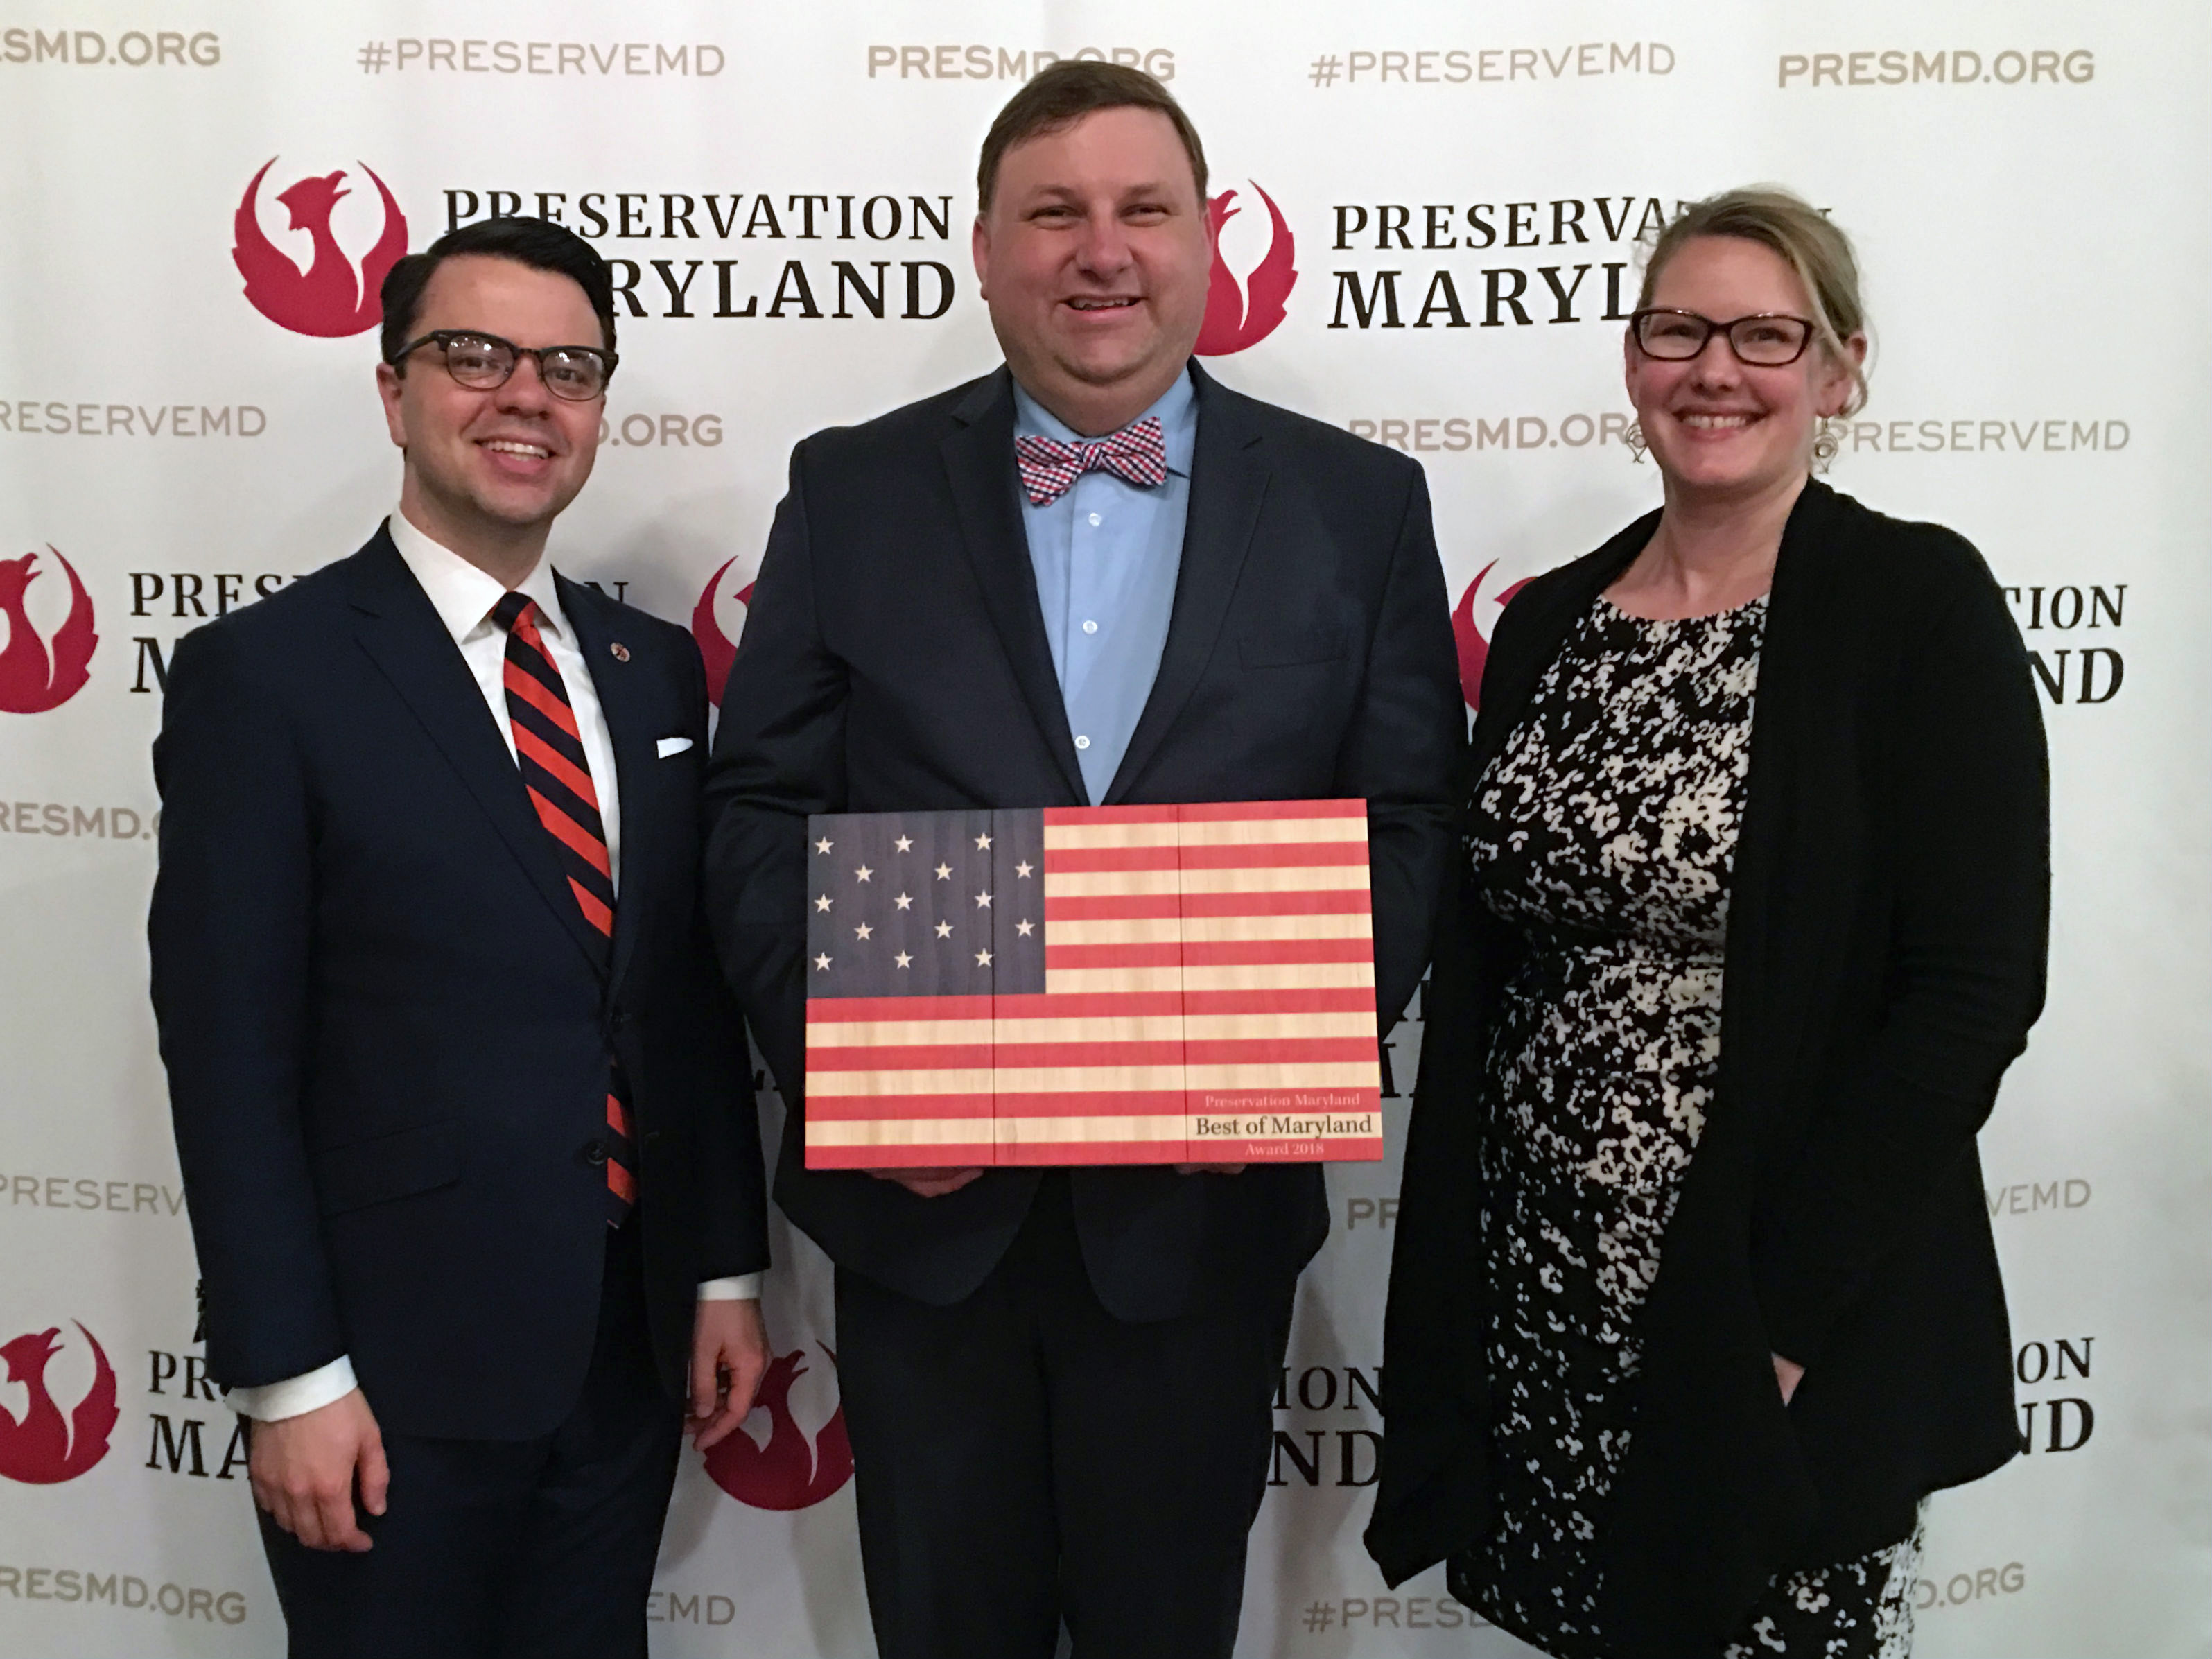 preservation-maryland-awards-nick-redding-aaron-marcavitch-nell-ziehl-05182018 (1)